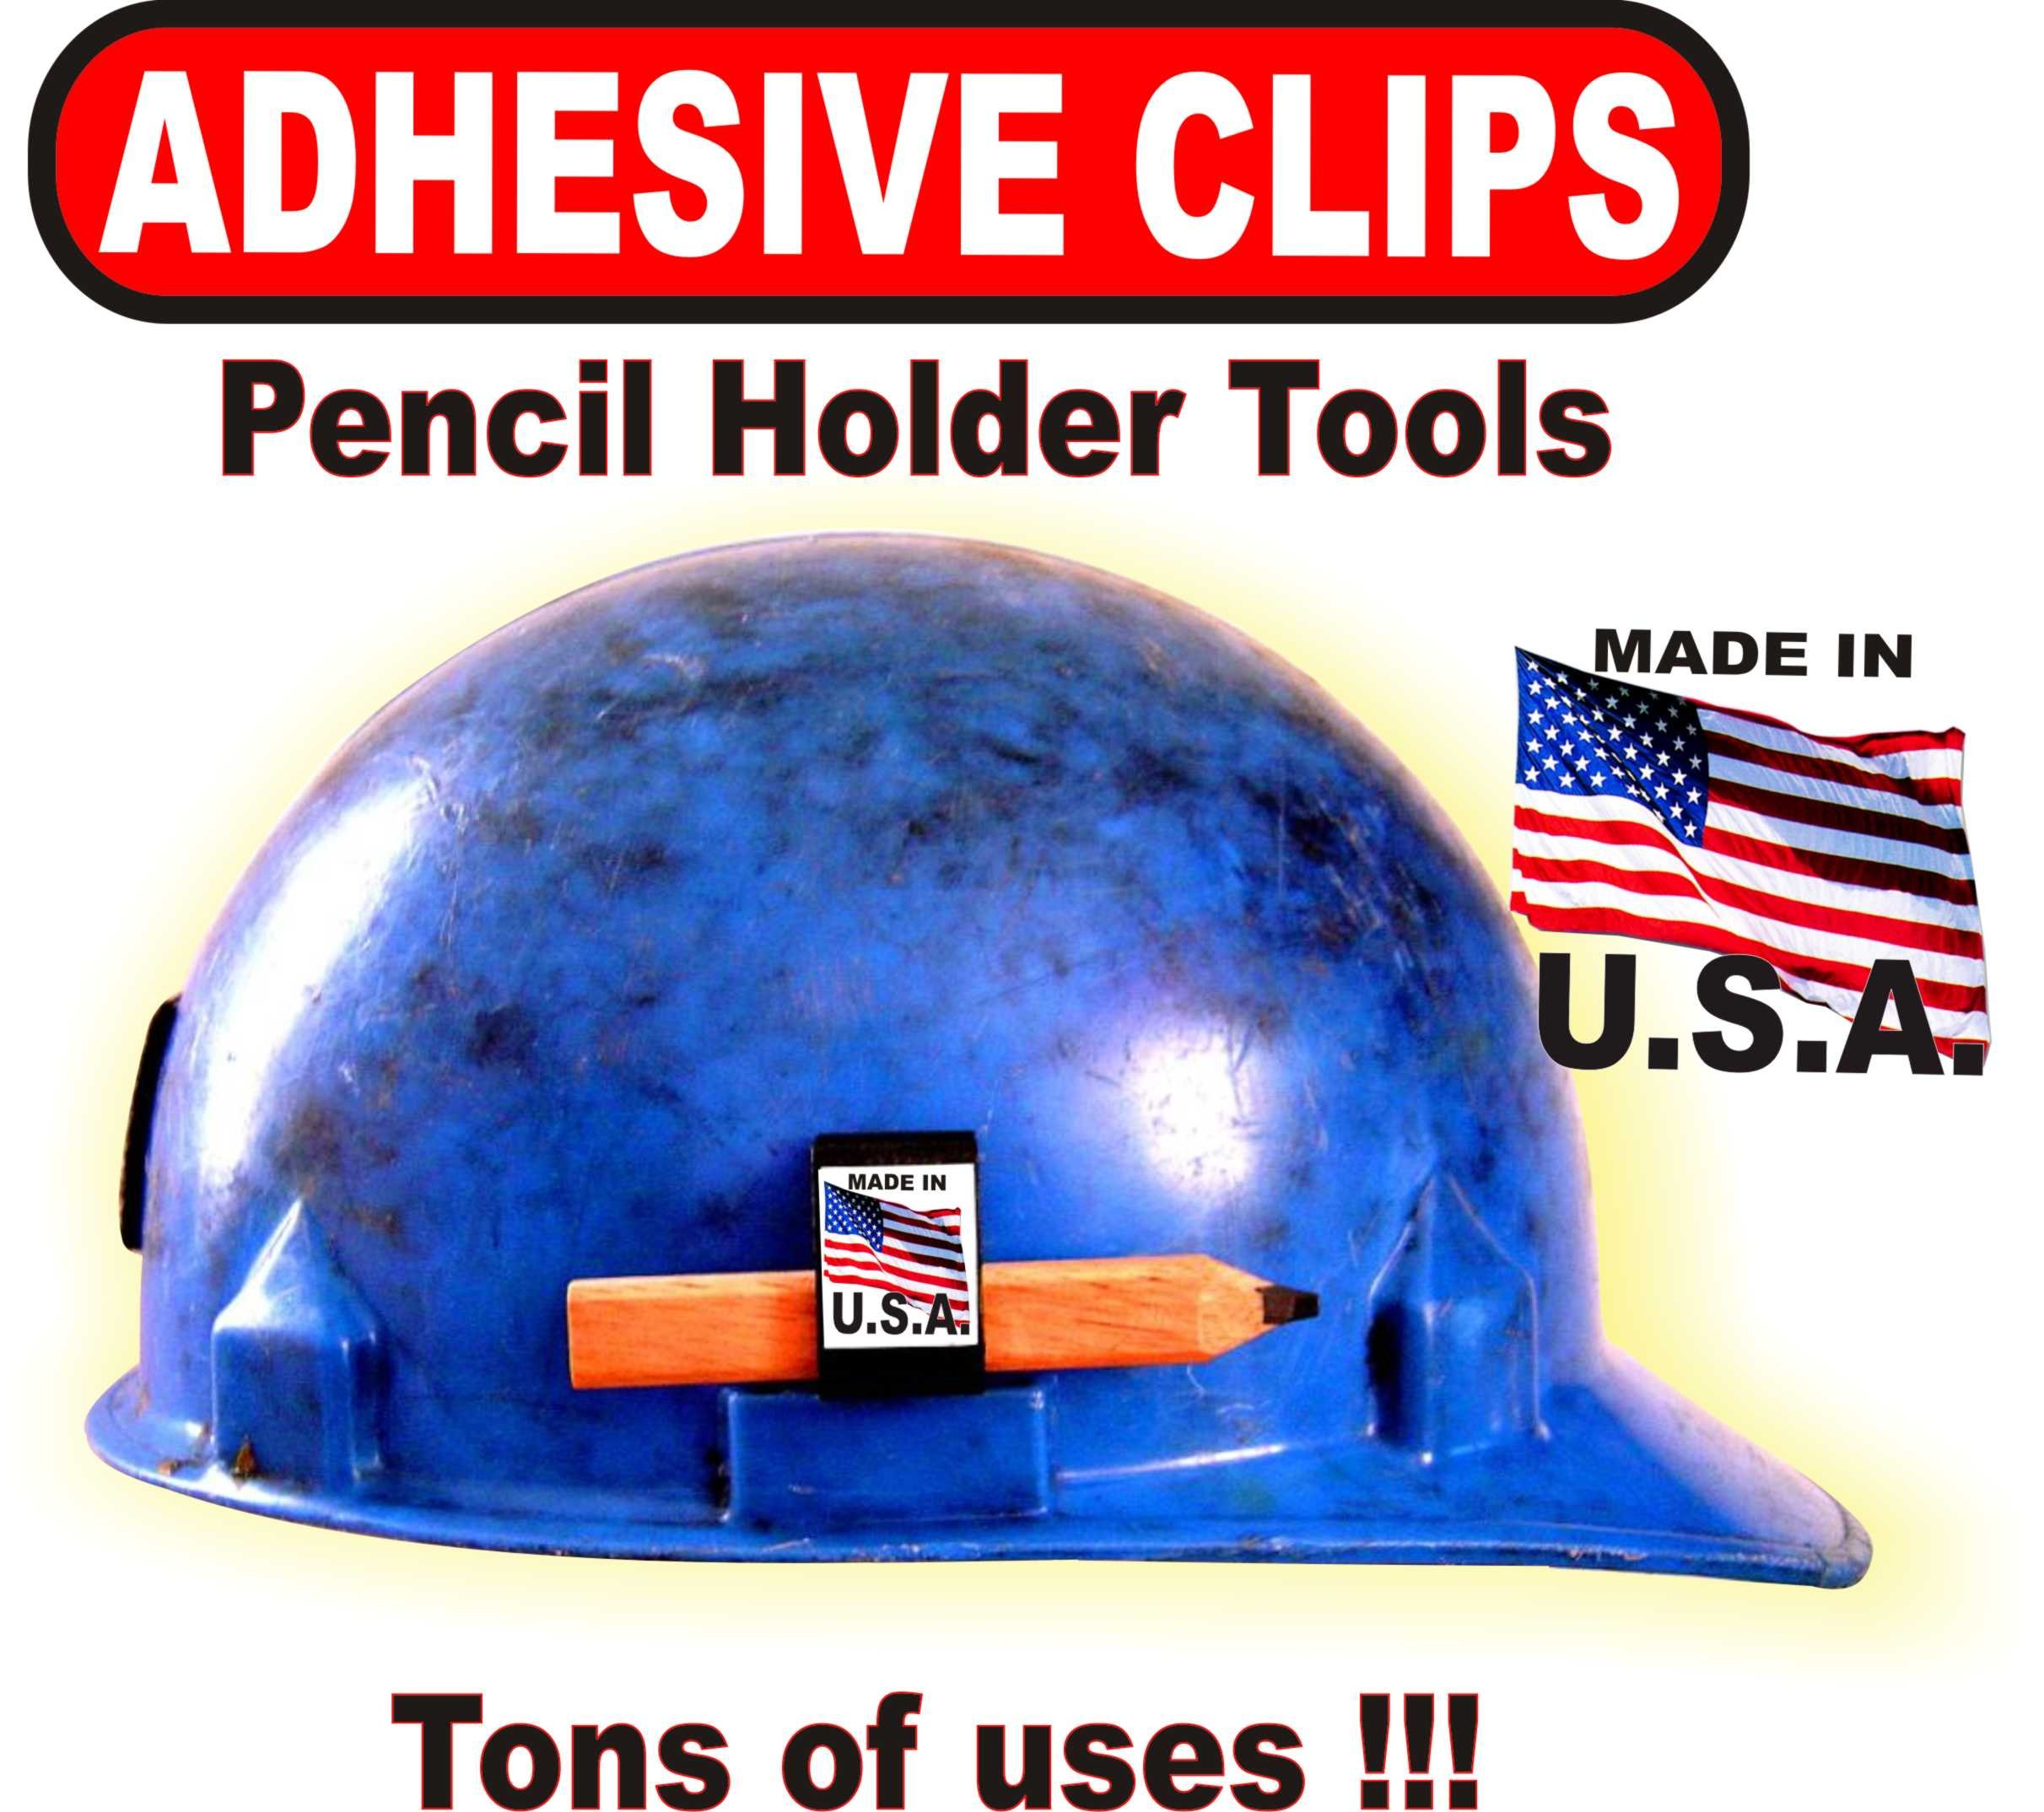 Hard Hat Adhesive Clips 50 PACK of BLACK PENCIL HOLDER TOOLS With Tons of Uses!